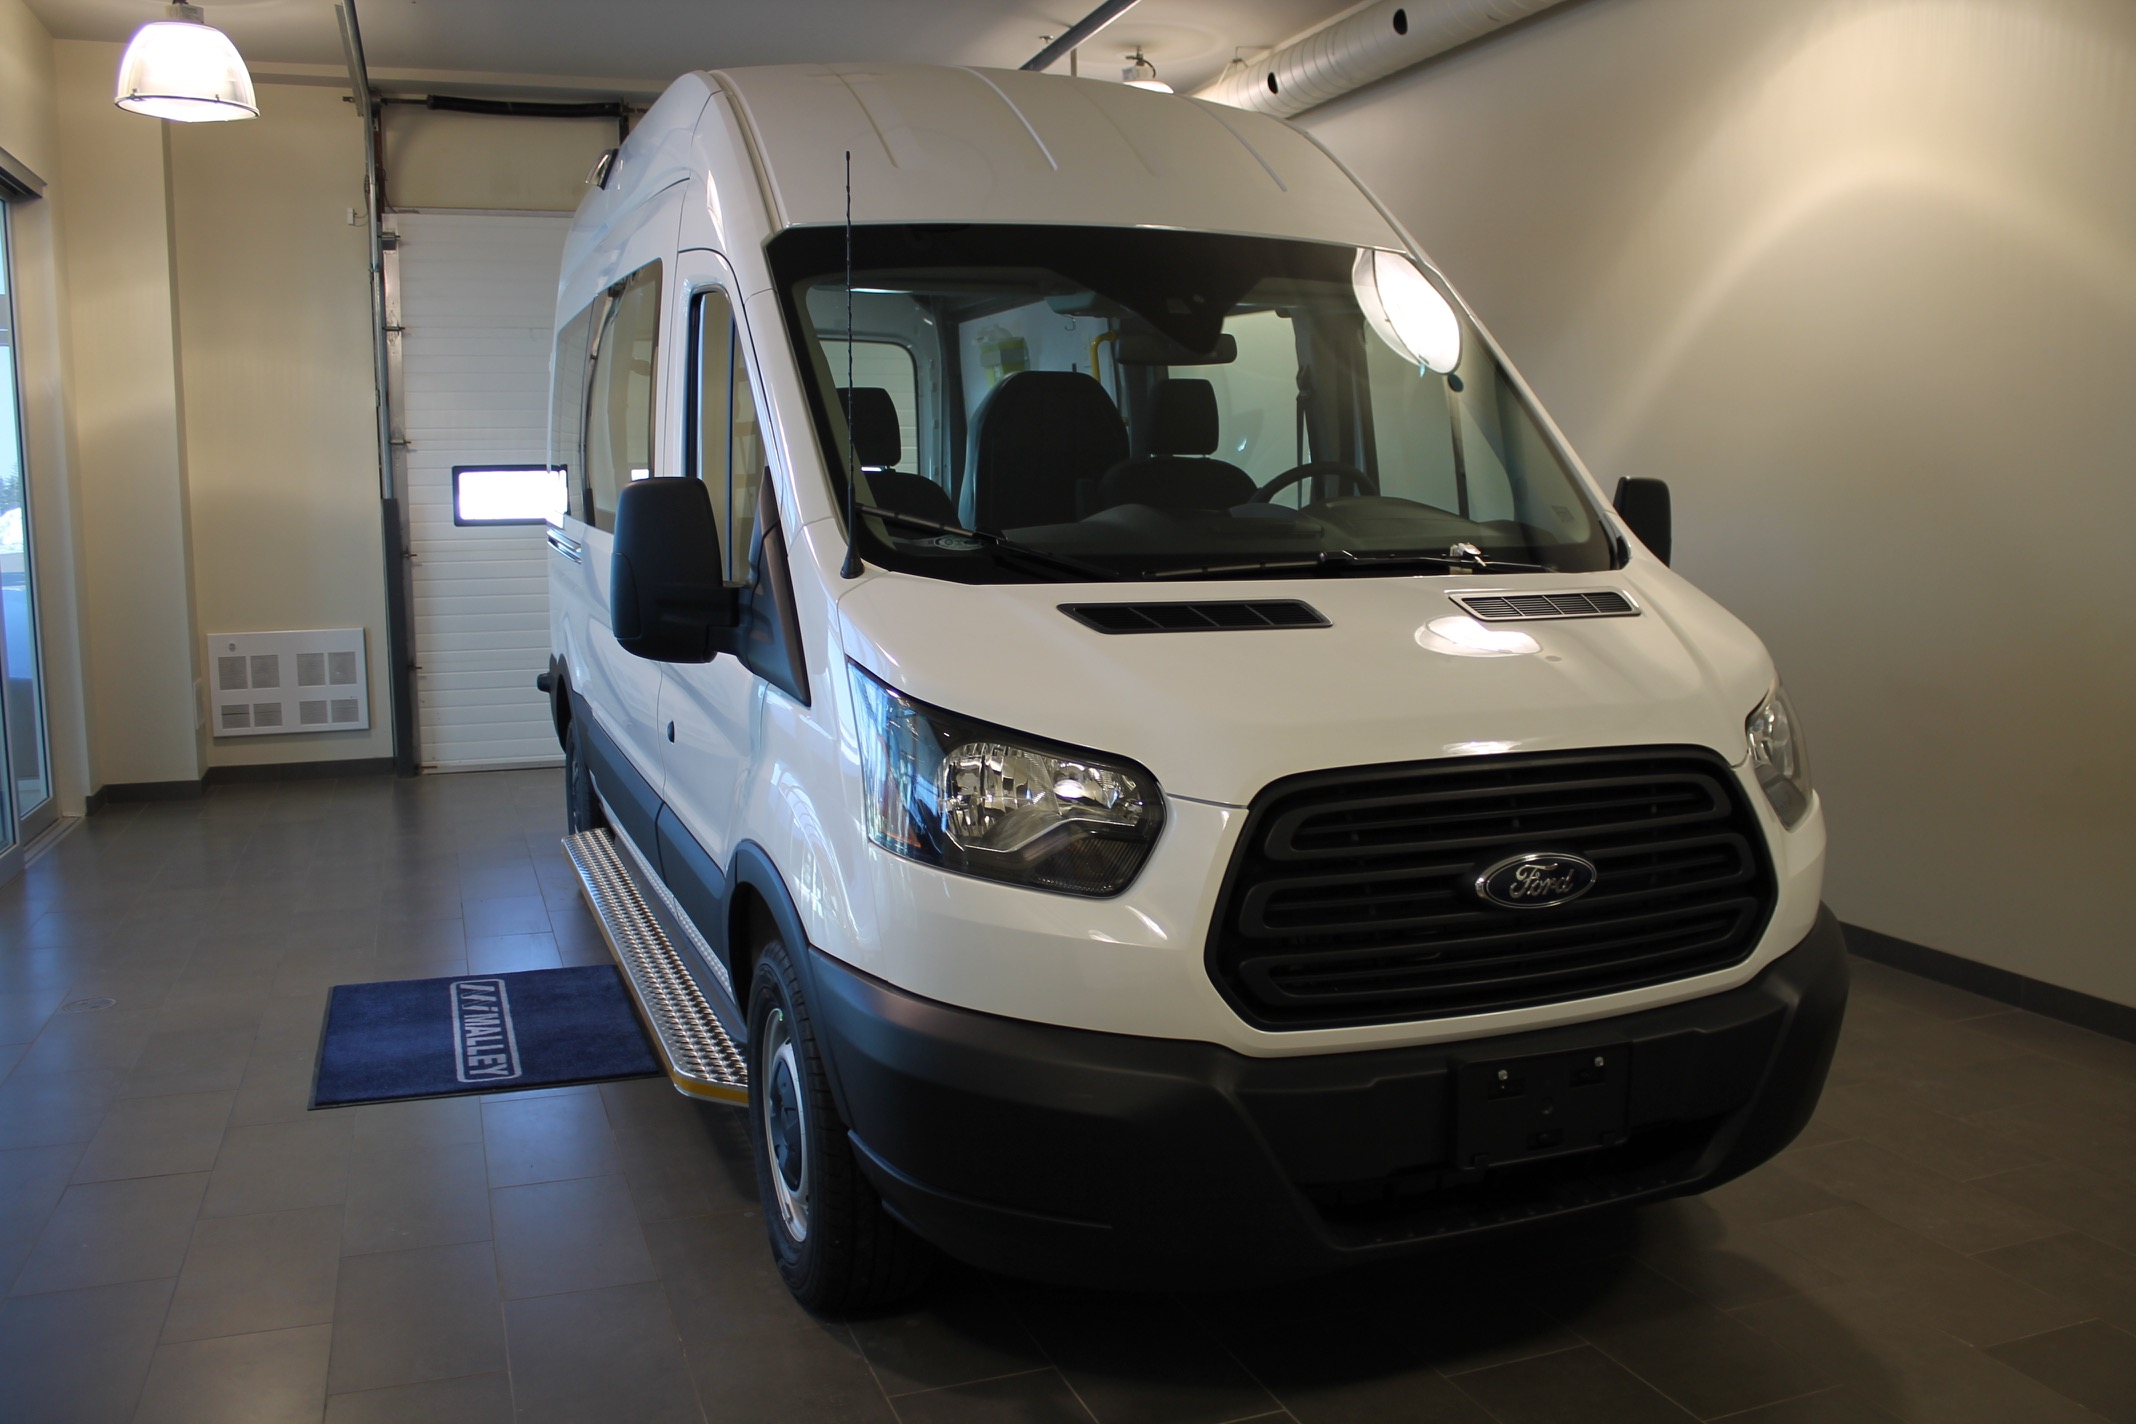 2019-ABLS0002-carrier-centers-patient-transfer-ford-transit-t250-highroof_009.JPG